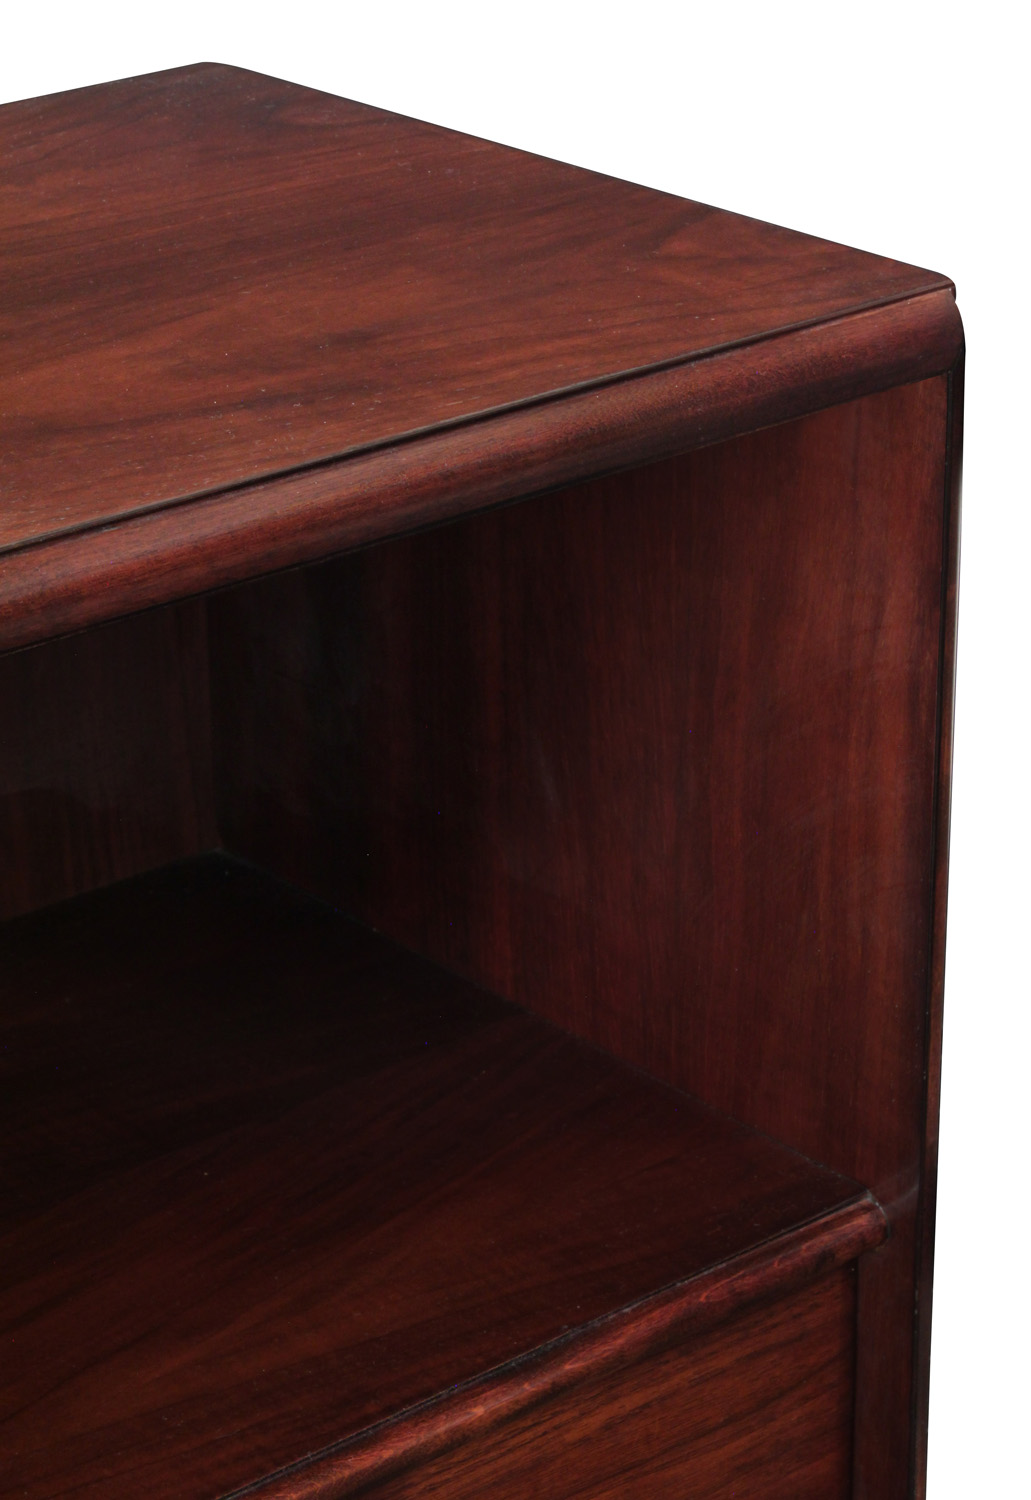 Gibbings 65 wlnt 1 drwer clean nightstands87 detail5 hires.jpg